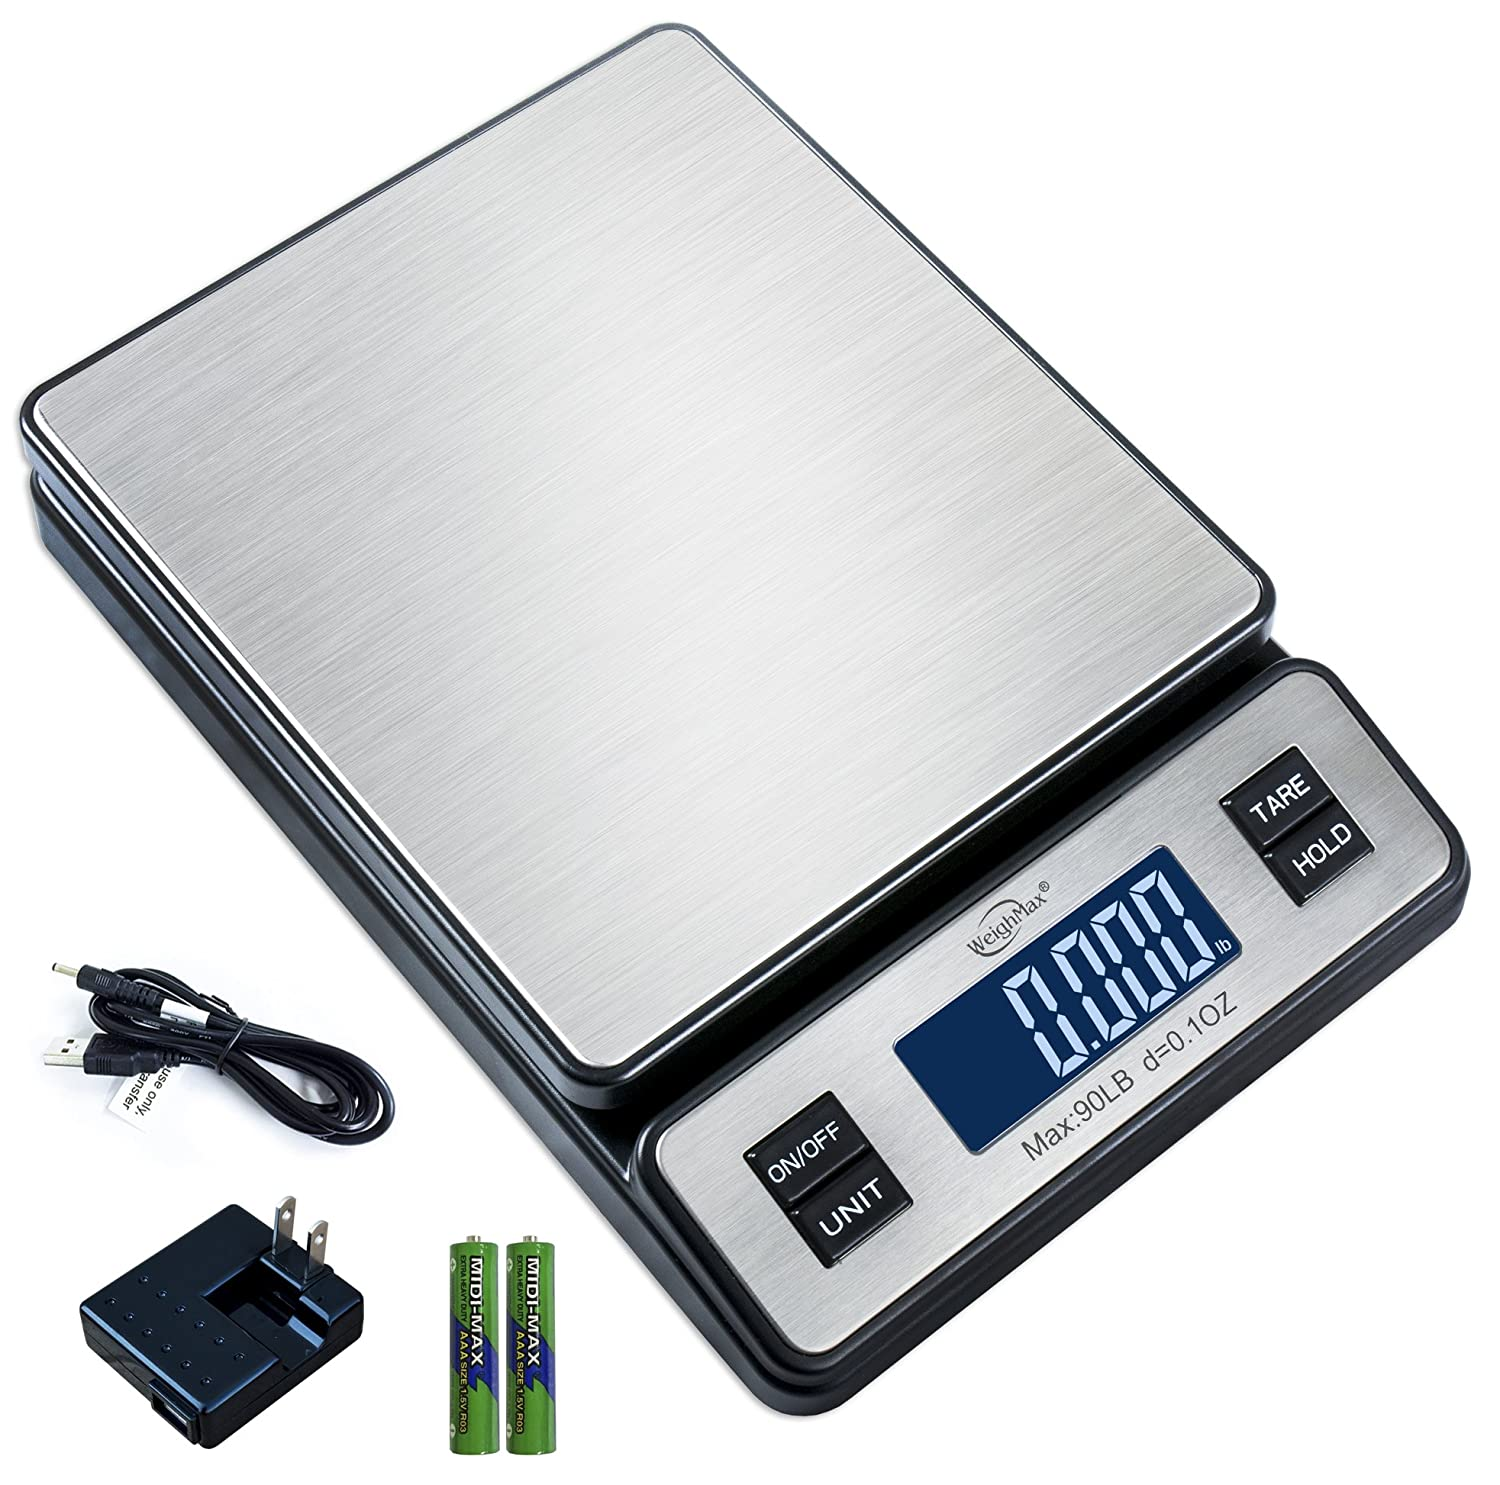 Weighmax W-2809 90 LB X 0.1 OZ Durable Stainless Steel Digital Postal Scale, Shipping Scale with AC Adapter